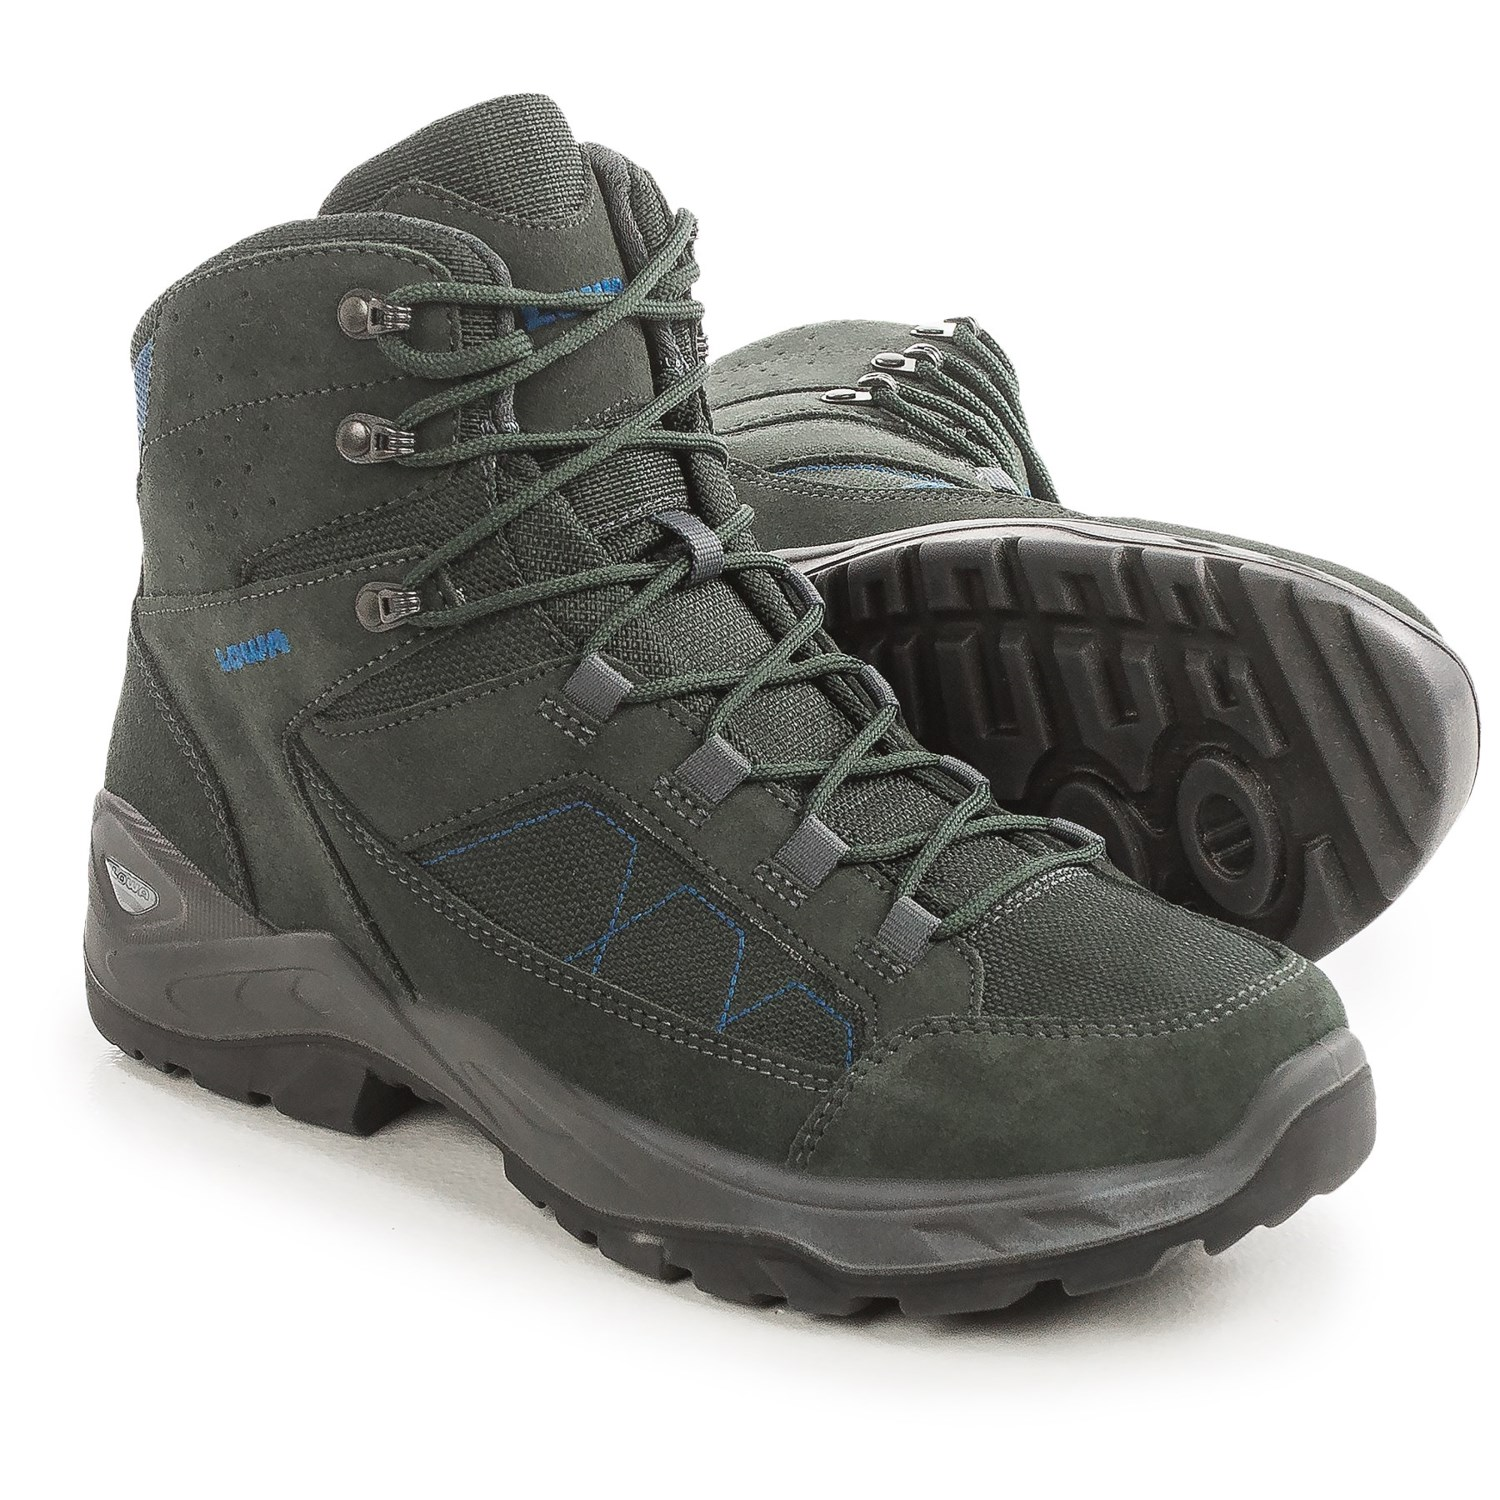 Lowa Toledo Gore-Tex® Hiking Boots (For Men) - Save 42%